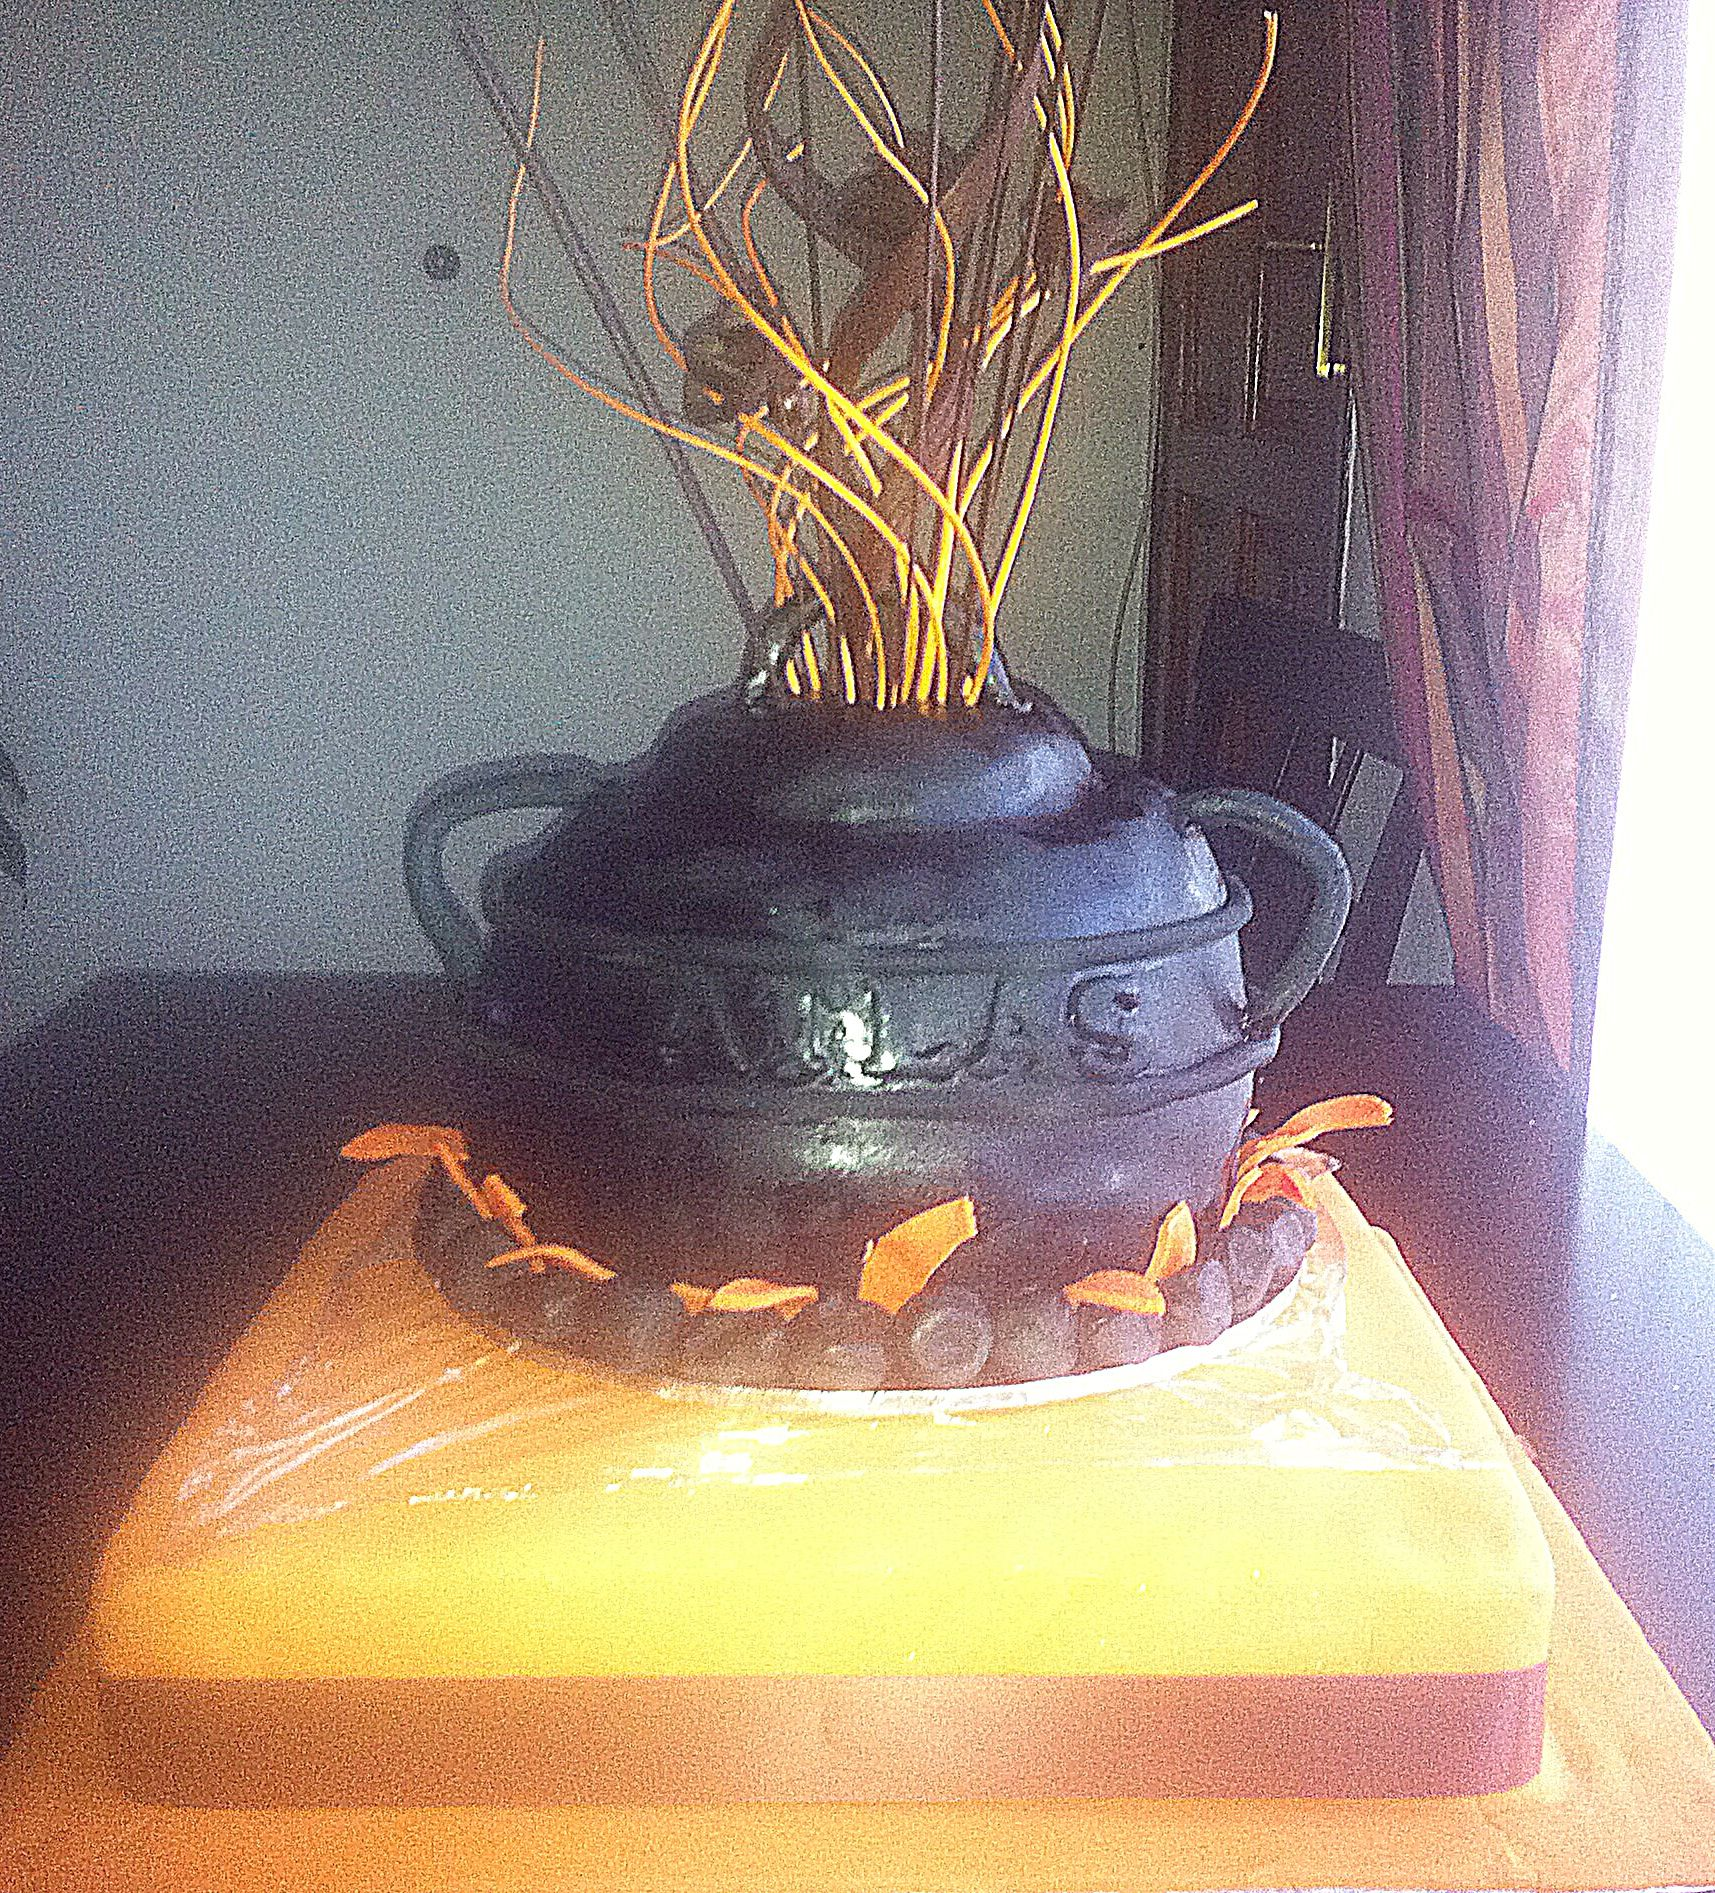 African Potjie Cake for a Zulu traditional wedding